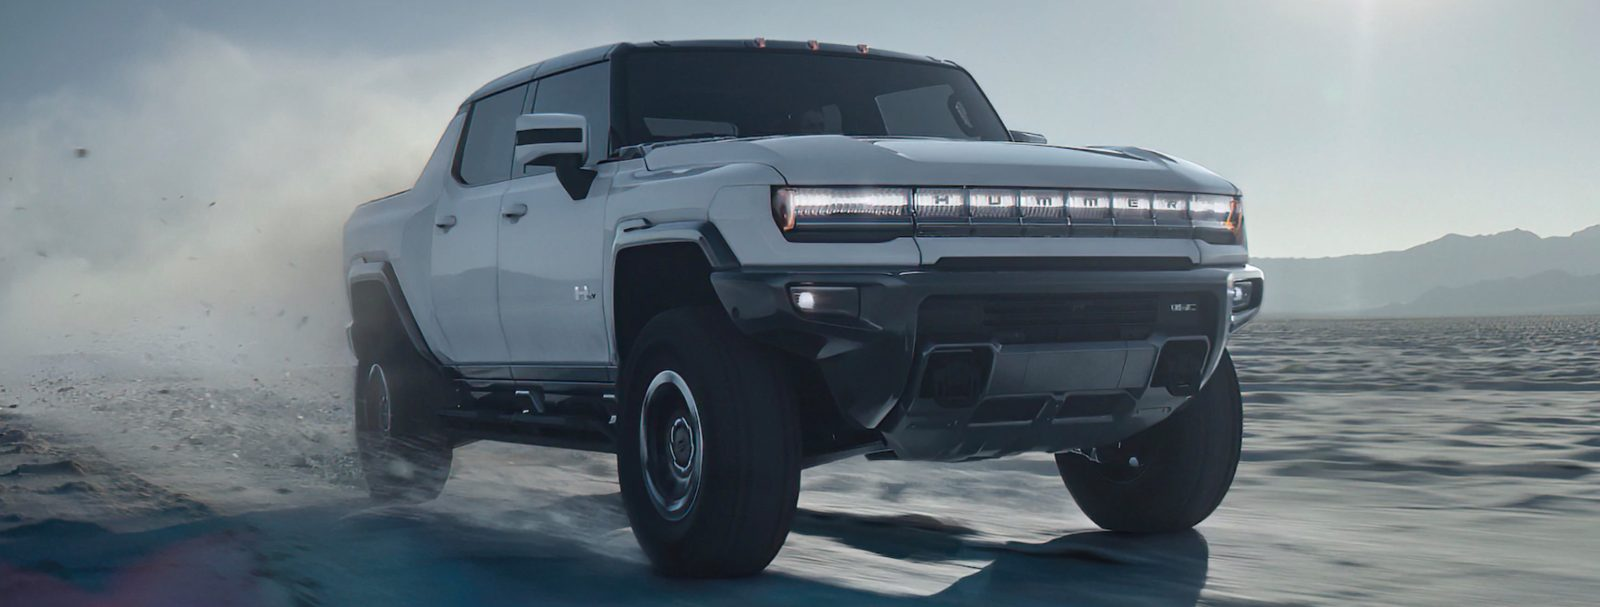 GM sells out first-year production of GMC Hummer EV electric pickup in an hour - Electrek